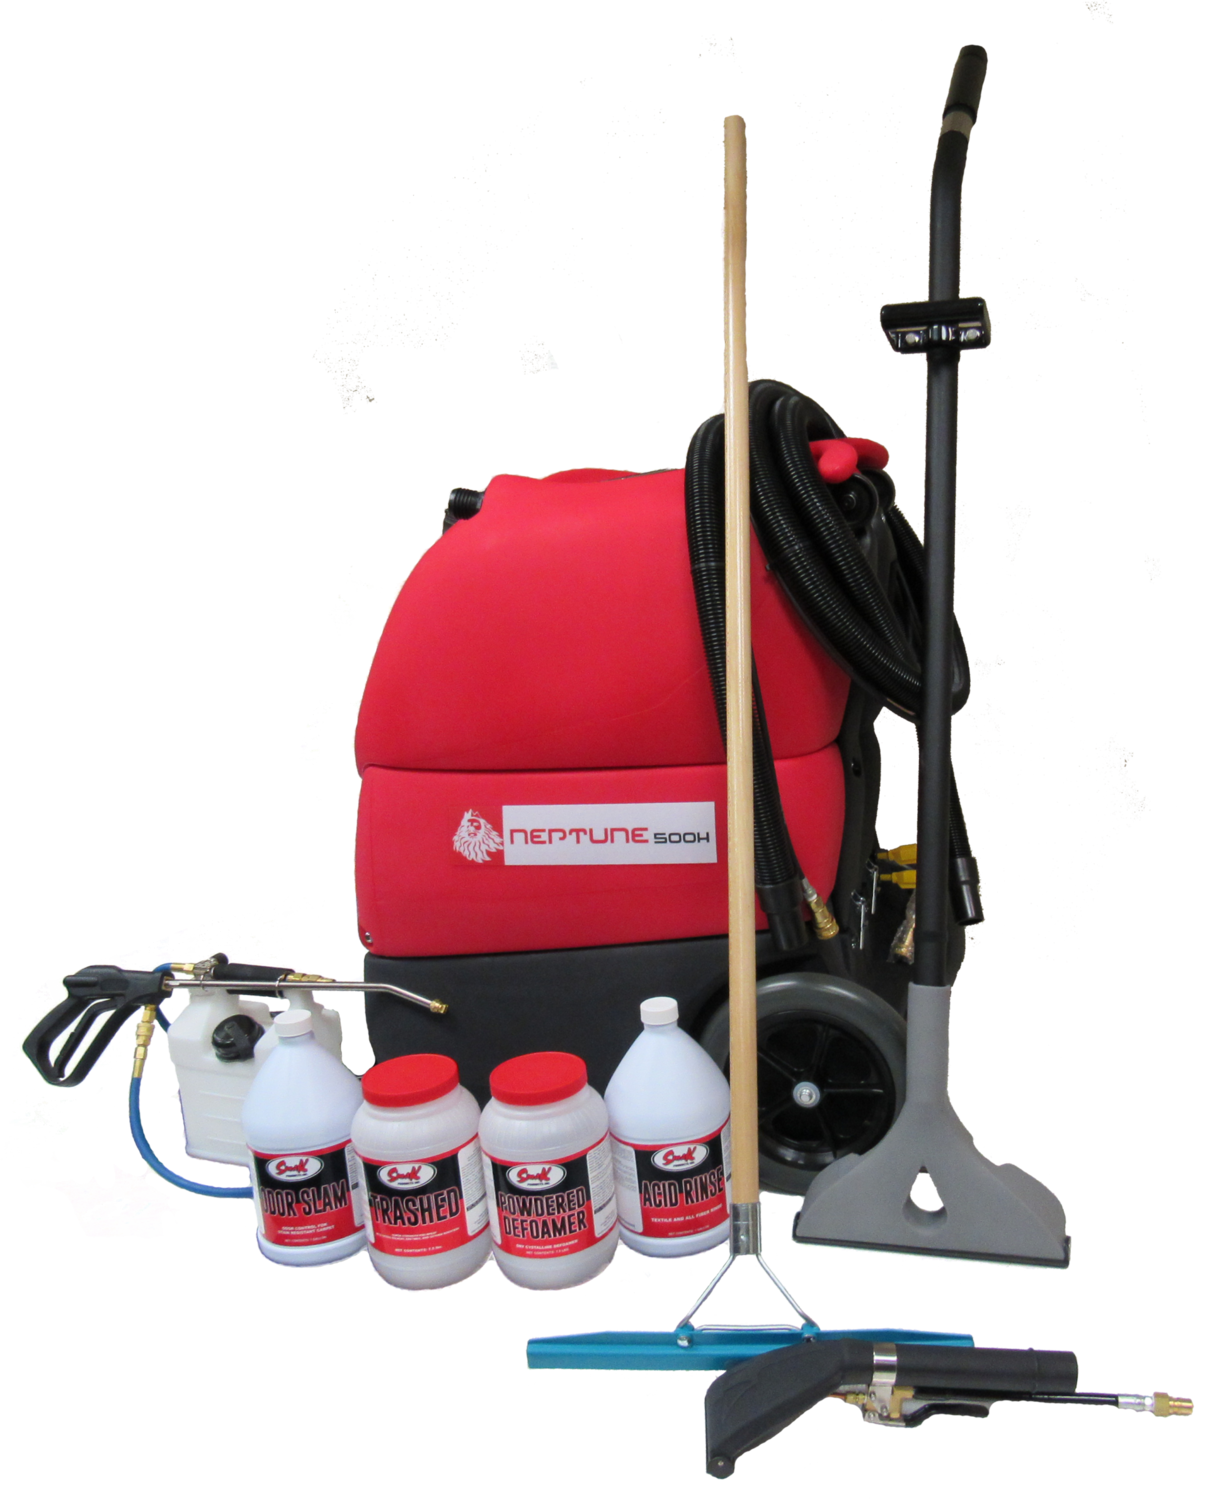 Complete Carpet Cleaning Equipment Package – Neptune 500H